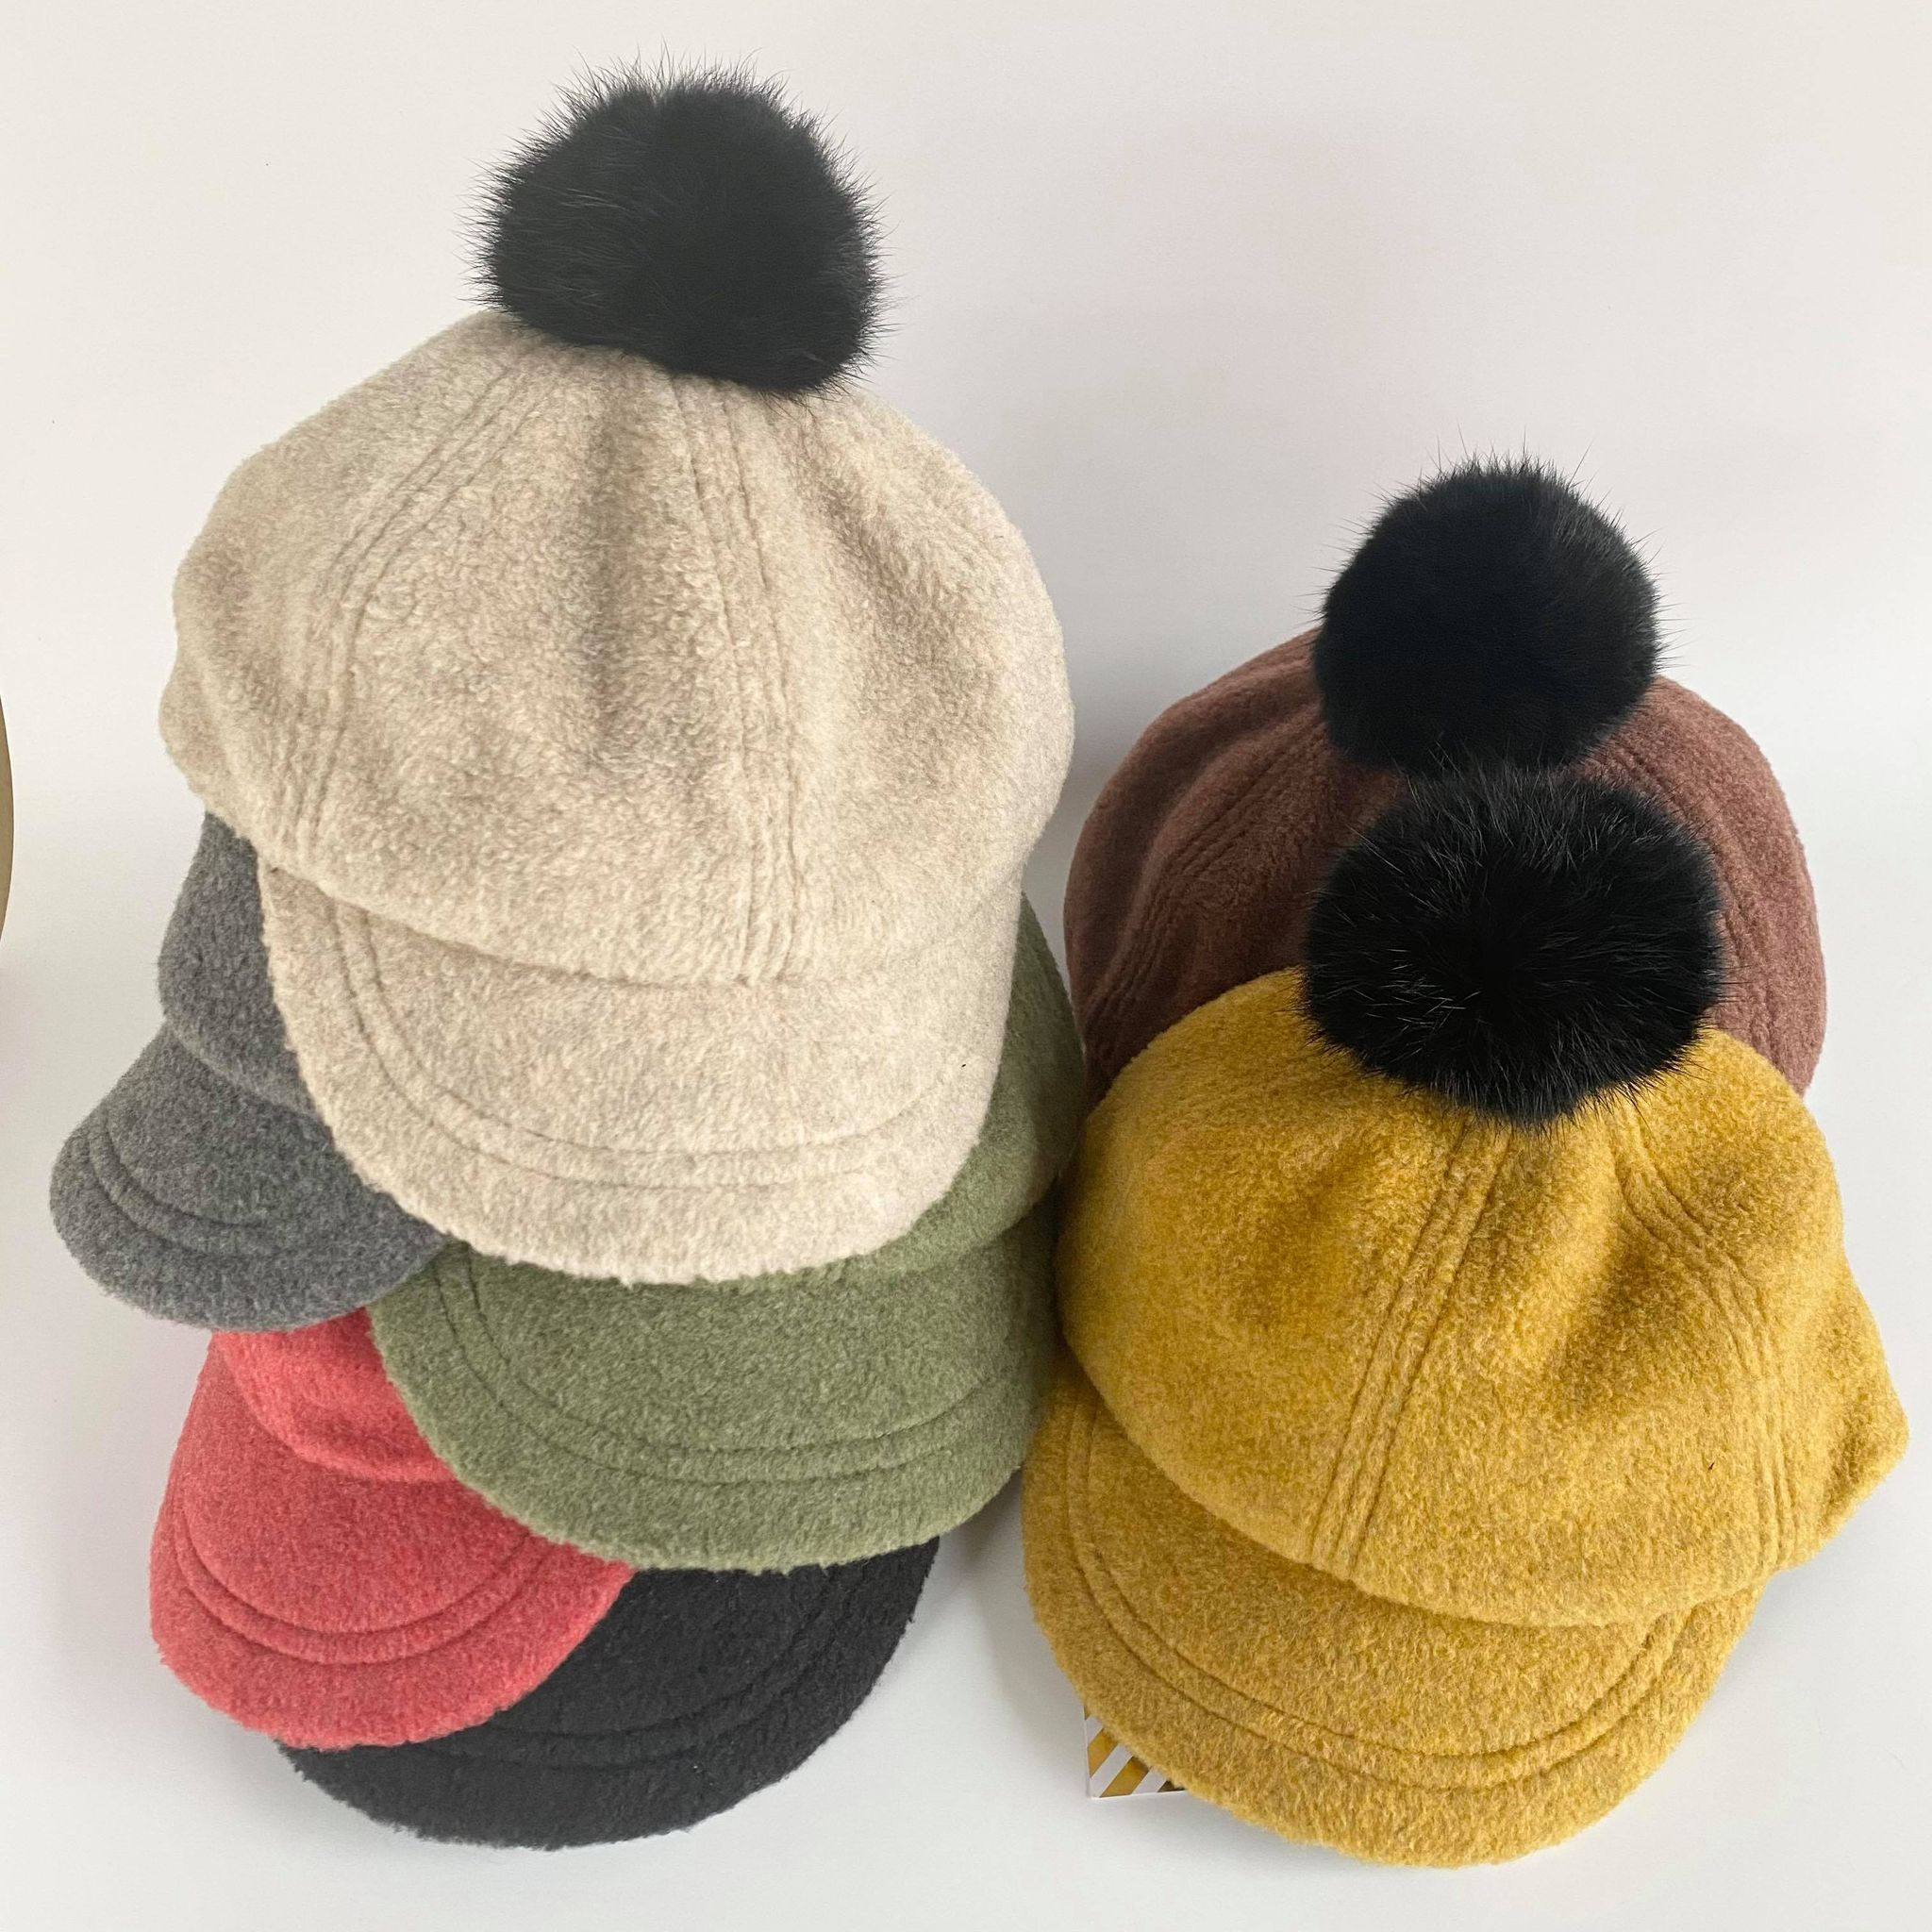 【ソウルフード/chocolatesoup】FLEECE POMPOM CAP